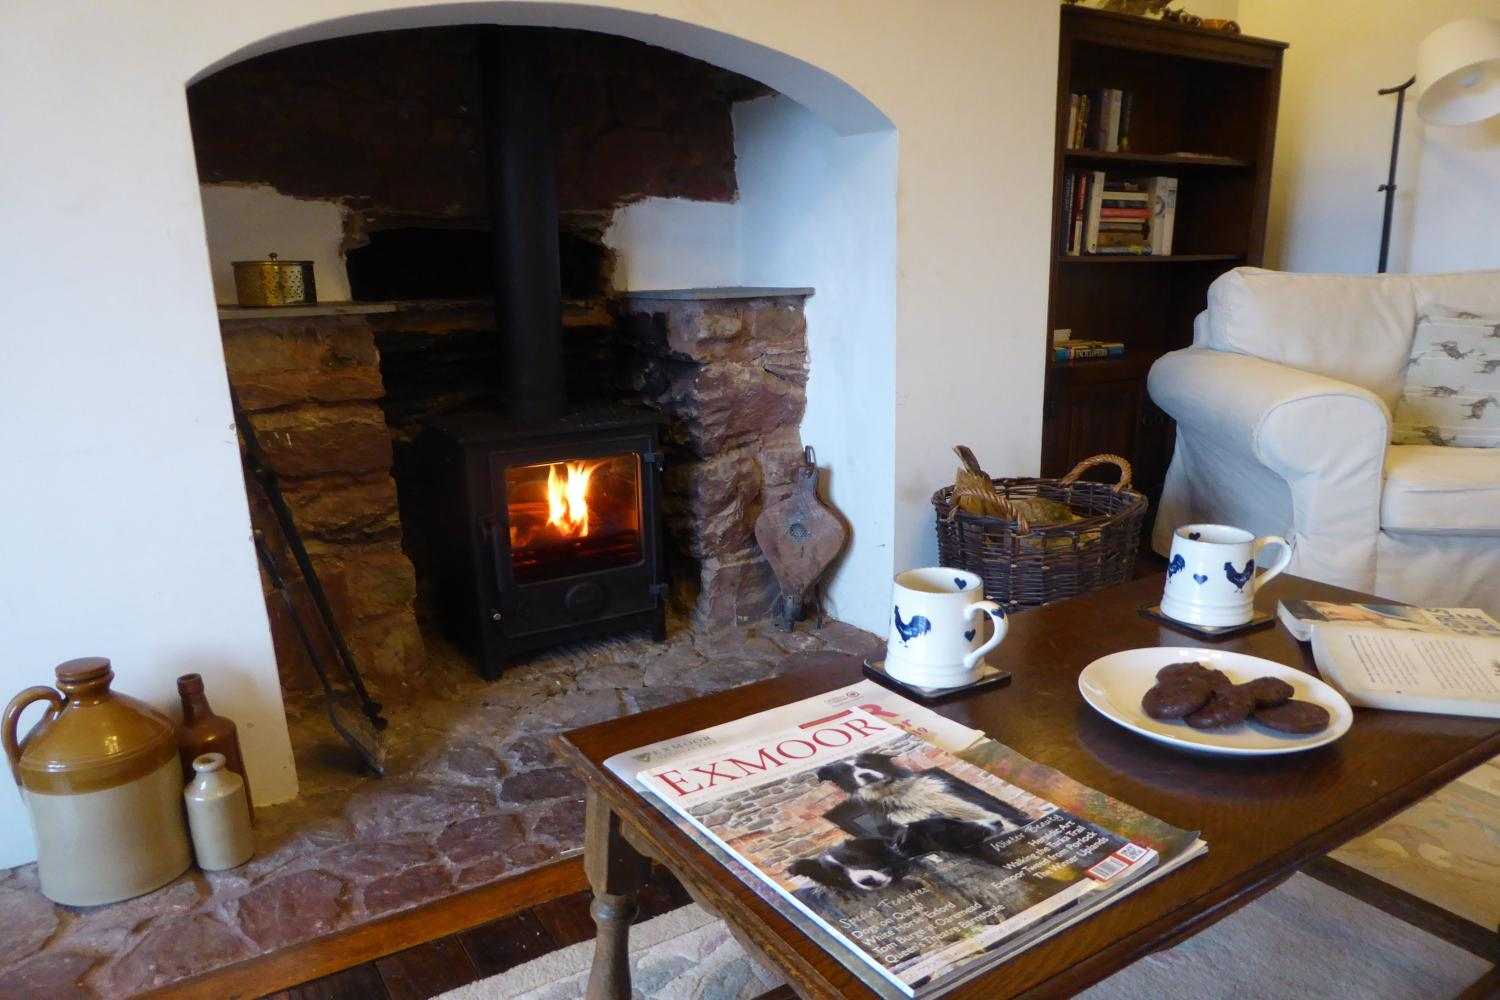 Come home to a cup of tea and a warm fire